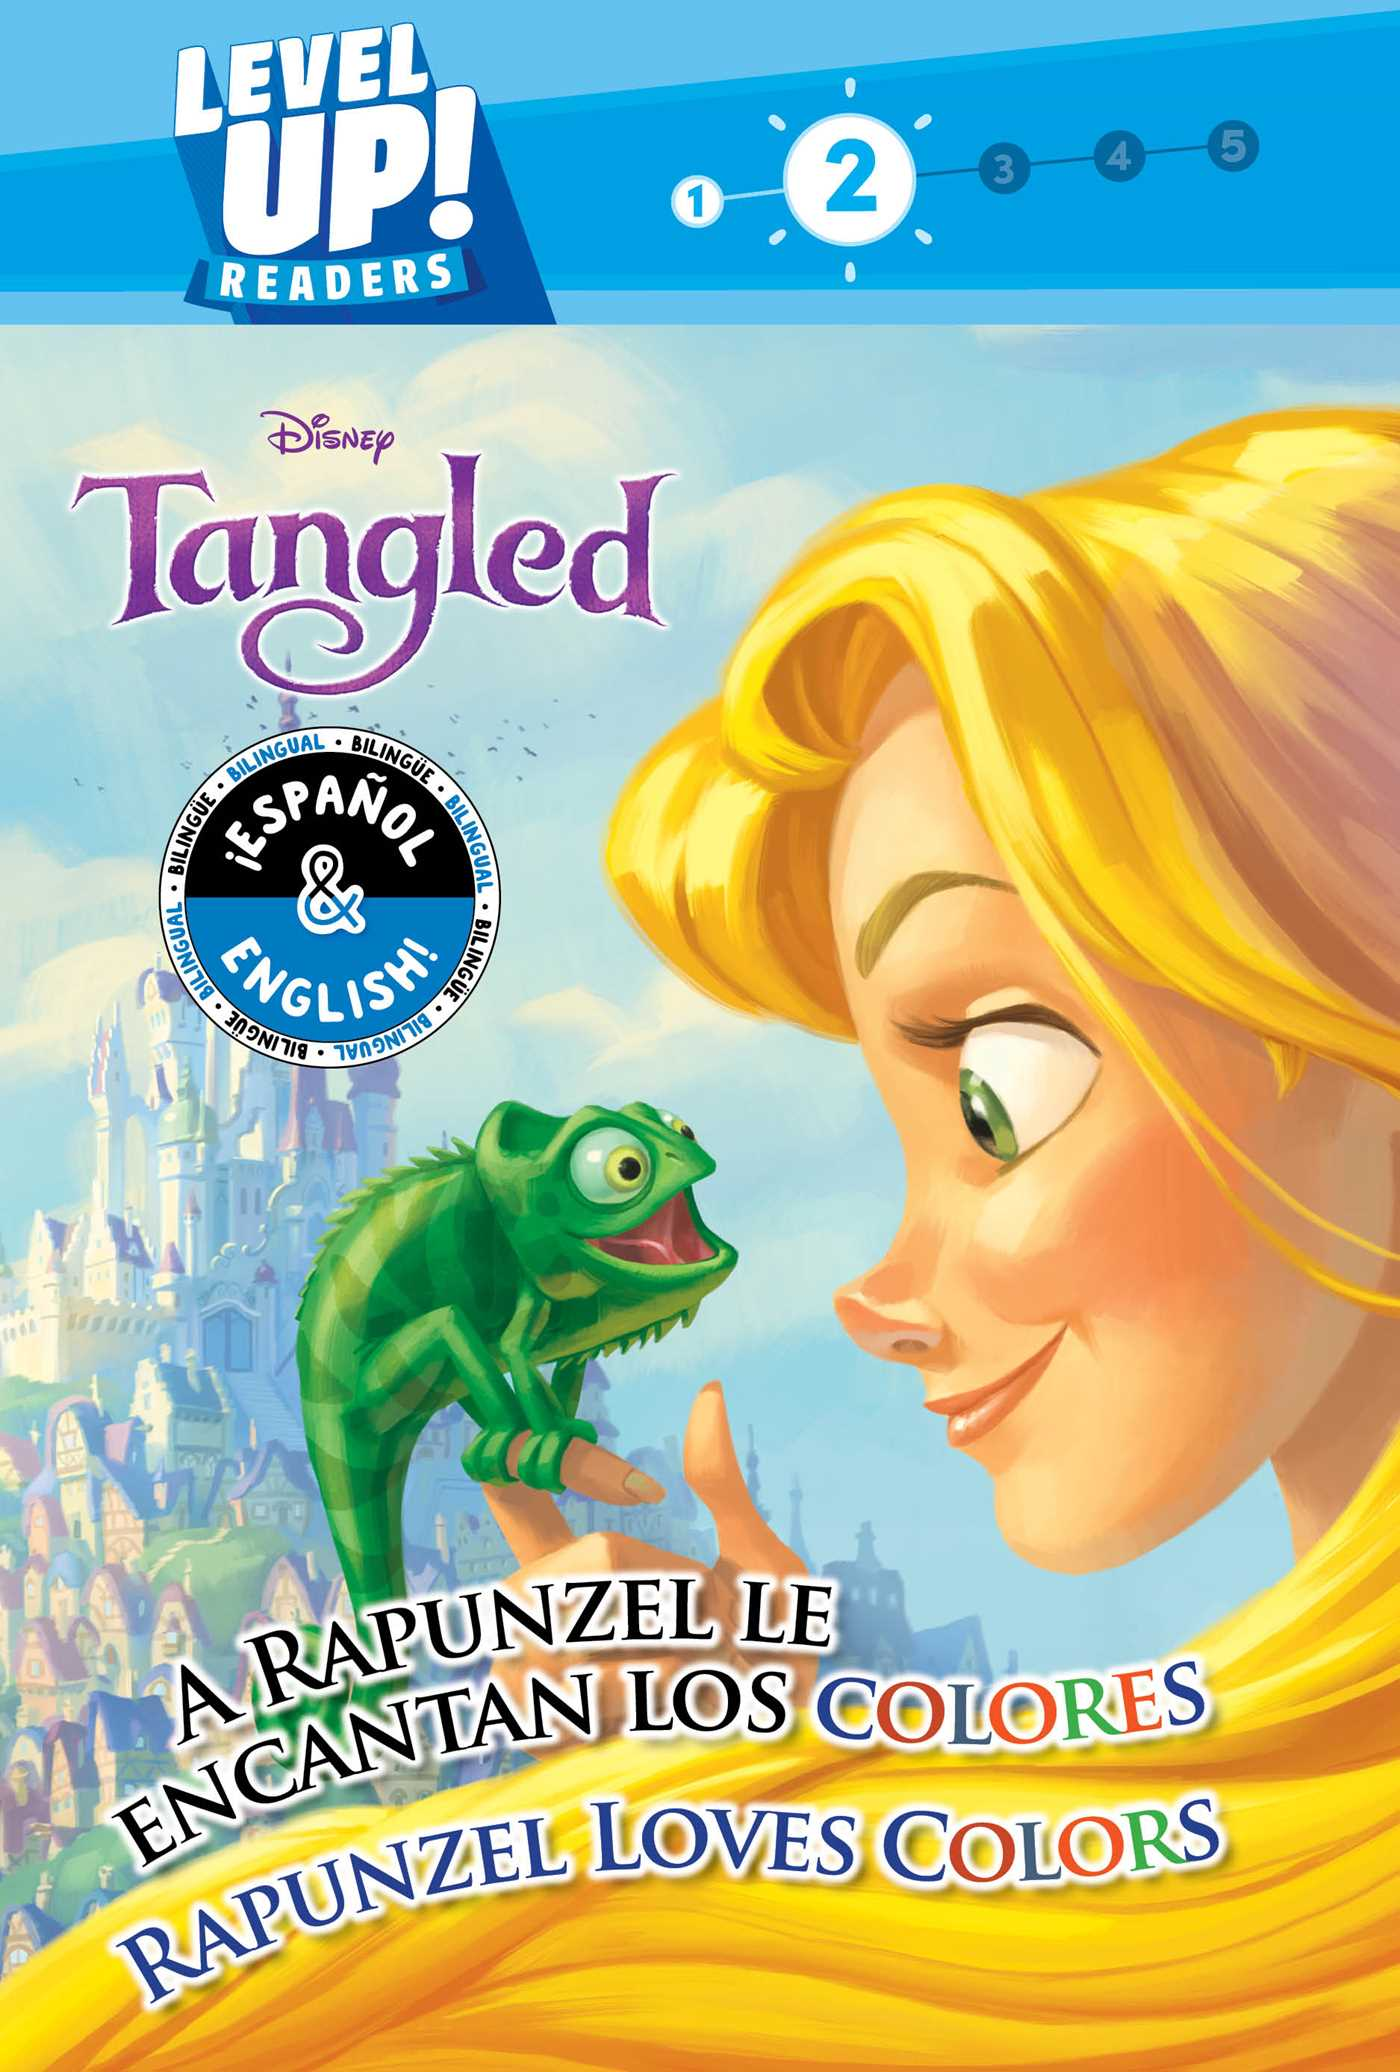 Rapunzel Loves Colors / A Rapunzel le encantan los colores (English-Spanish) (Disney Tangled)